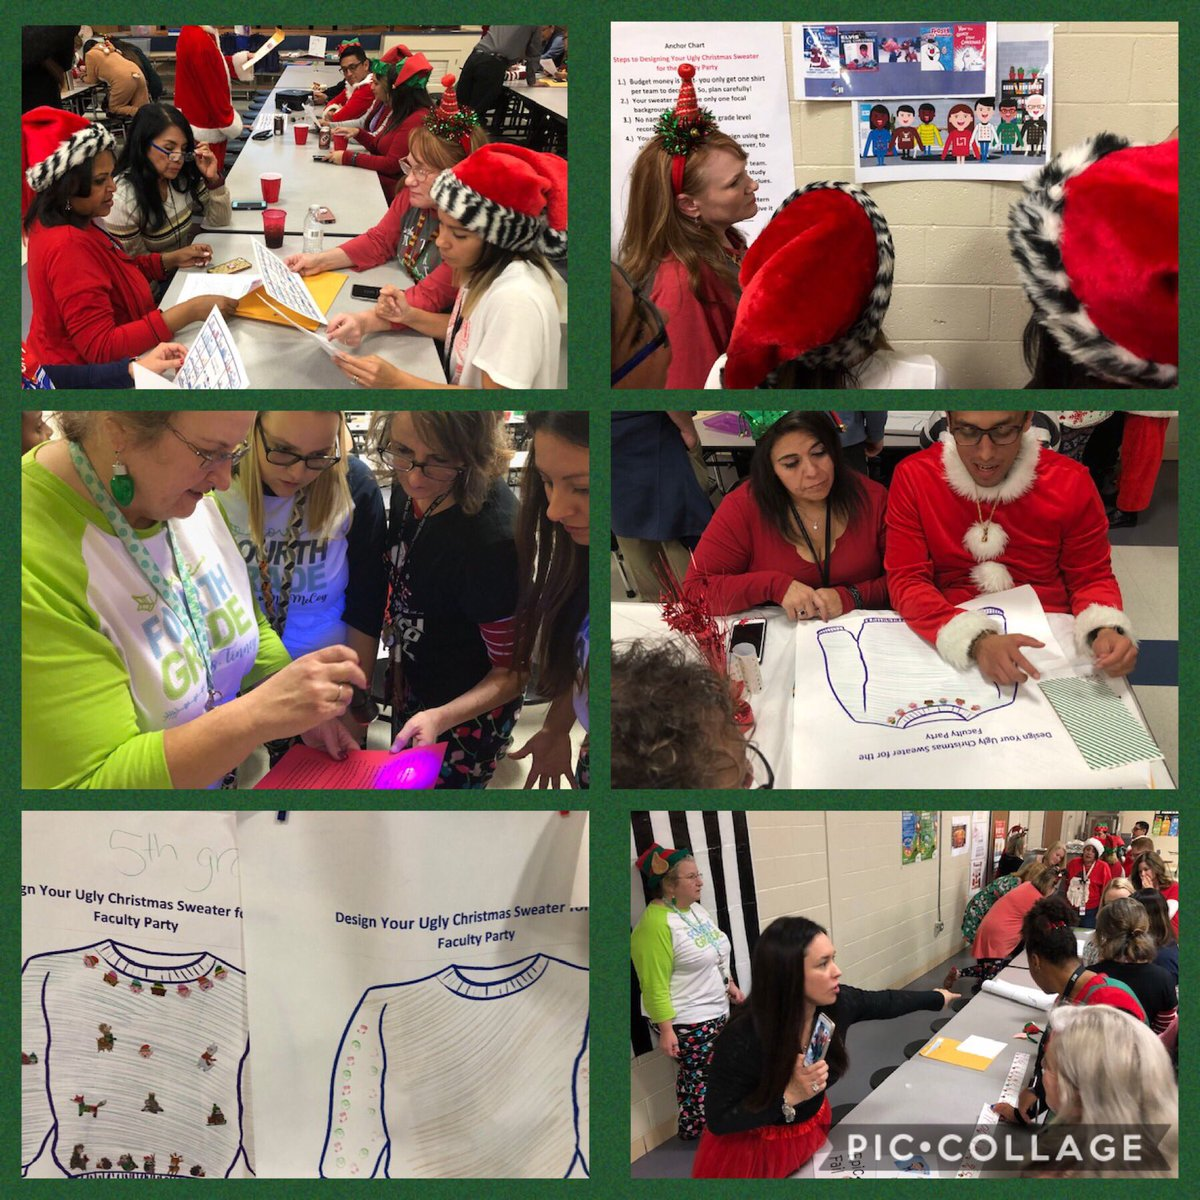 @ThorntonPride Ending 2018 with Holiday Faculty Party BreakoutEdu! It was a great idea Mrs. R to review our first half of the year PD with escape room activities; fun to plan and execute! ❤️Thornton teachers& staff -Happy Holidays! @Lunascowboys @CoachATB